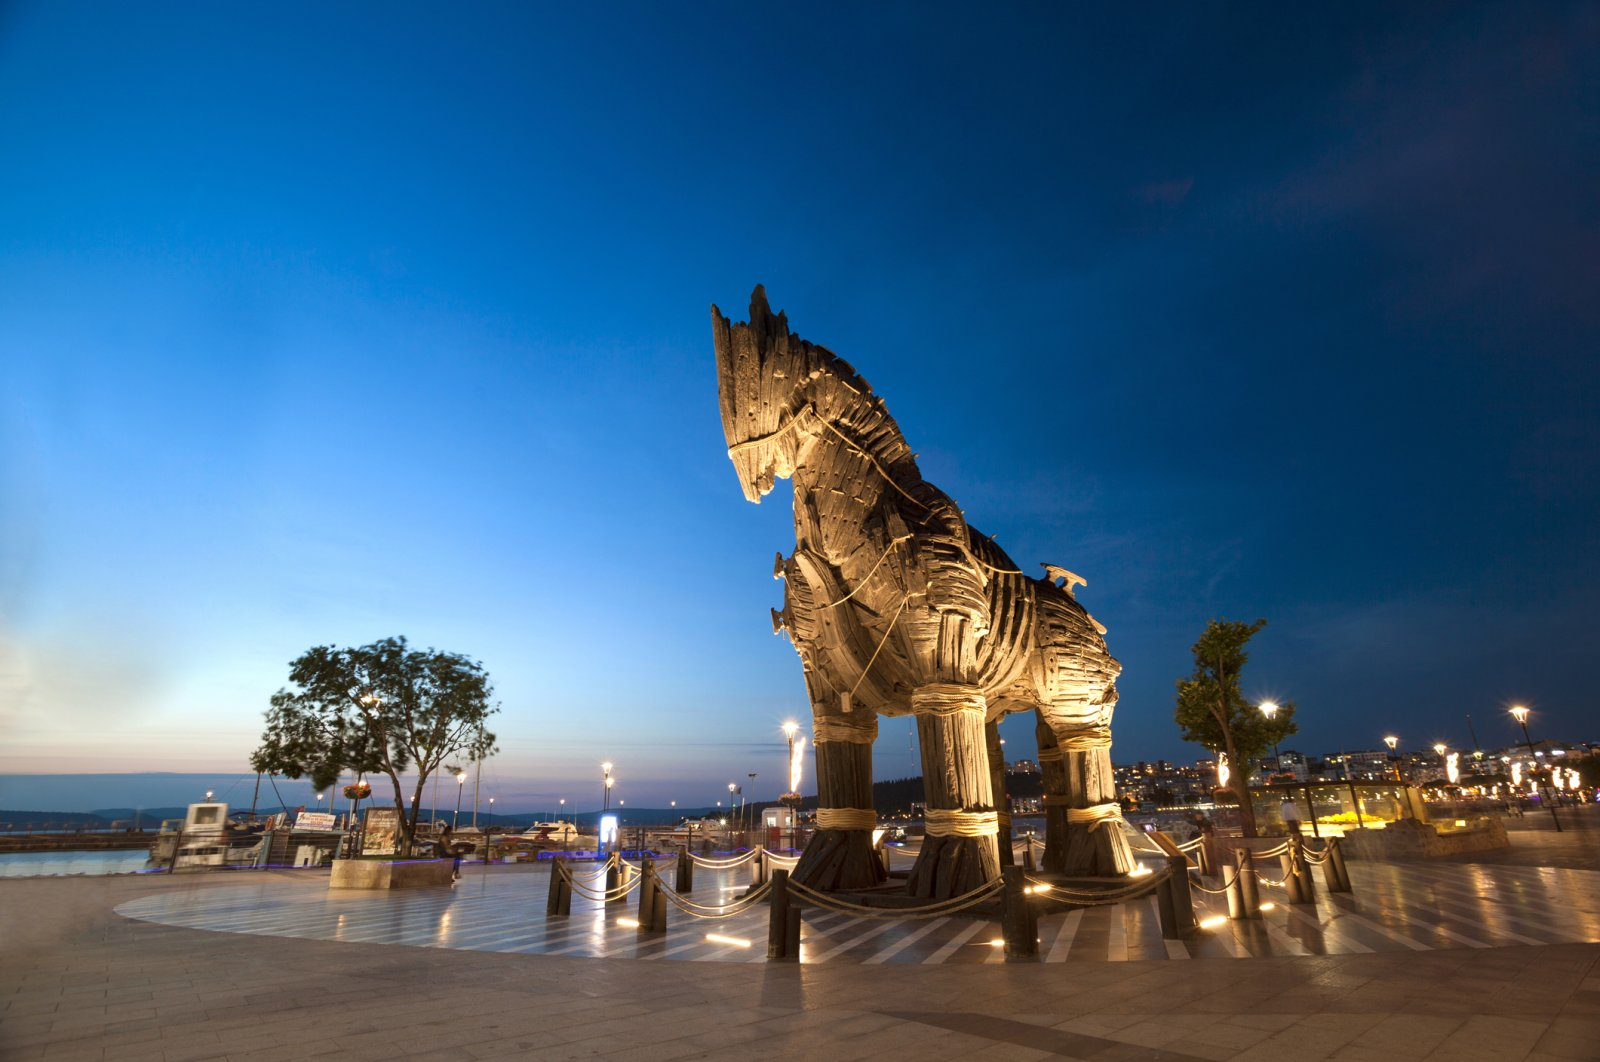 """The wooden horse used in the movie """"Troy"""" was gifted to Çanakkale in 2004."""